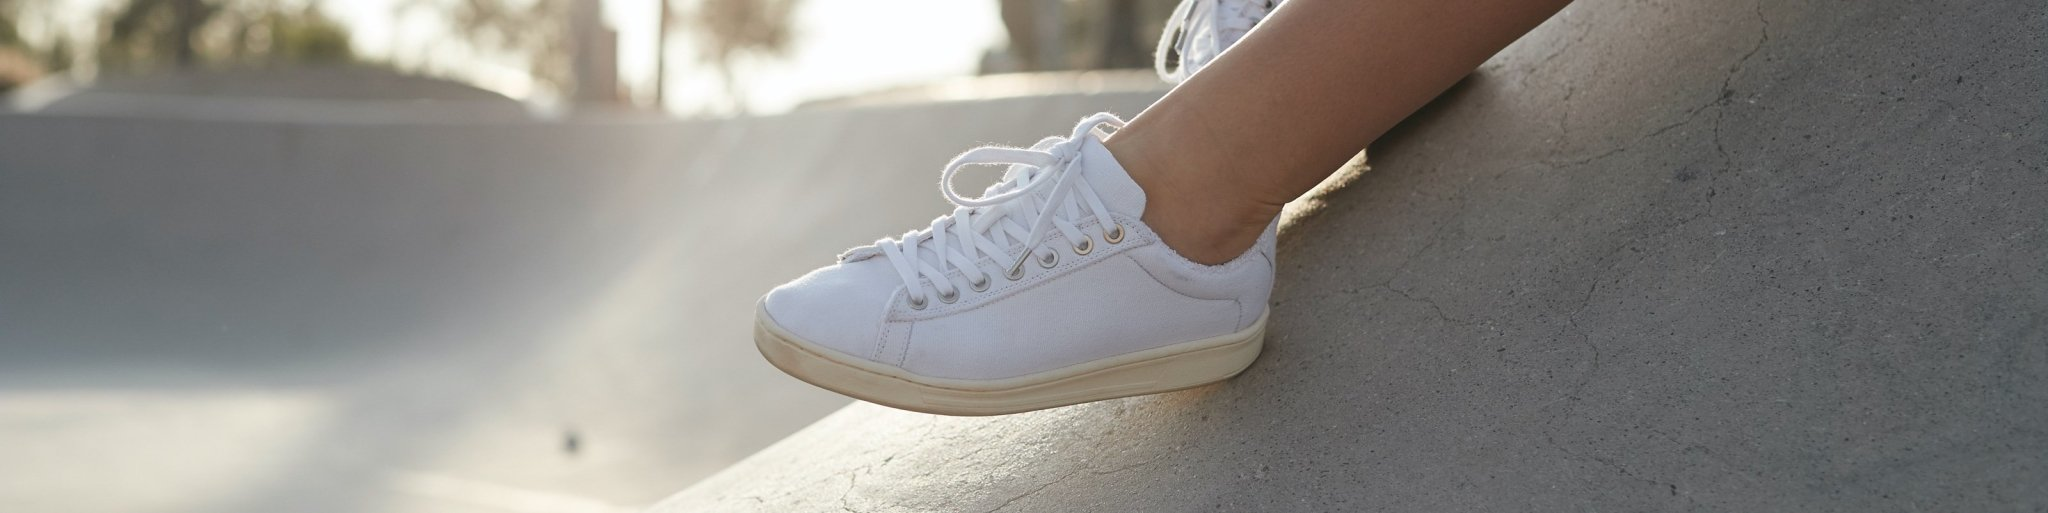 Ethical Women's Trainers | WAES-store